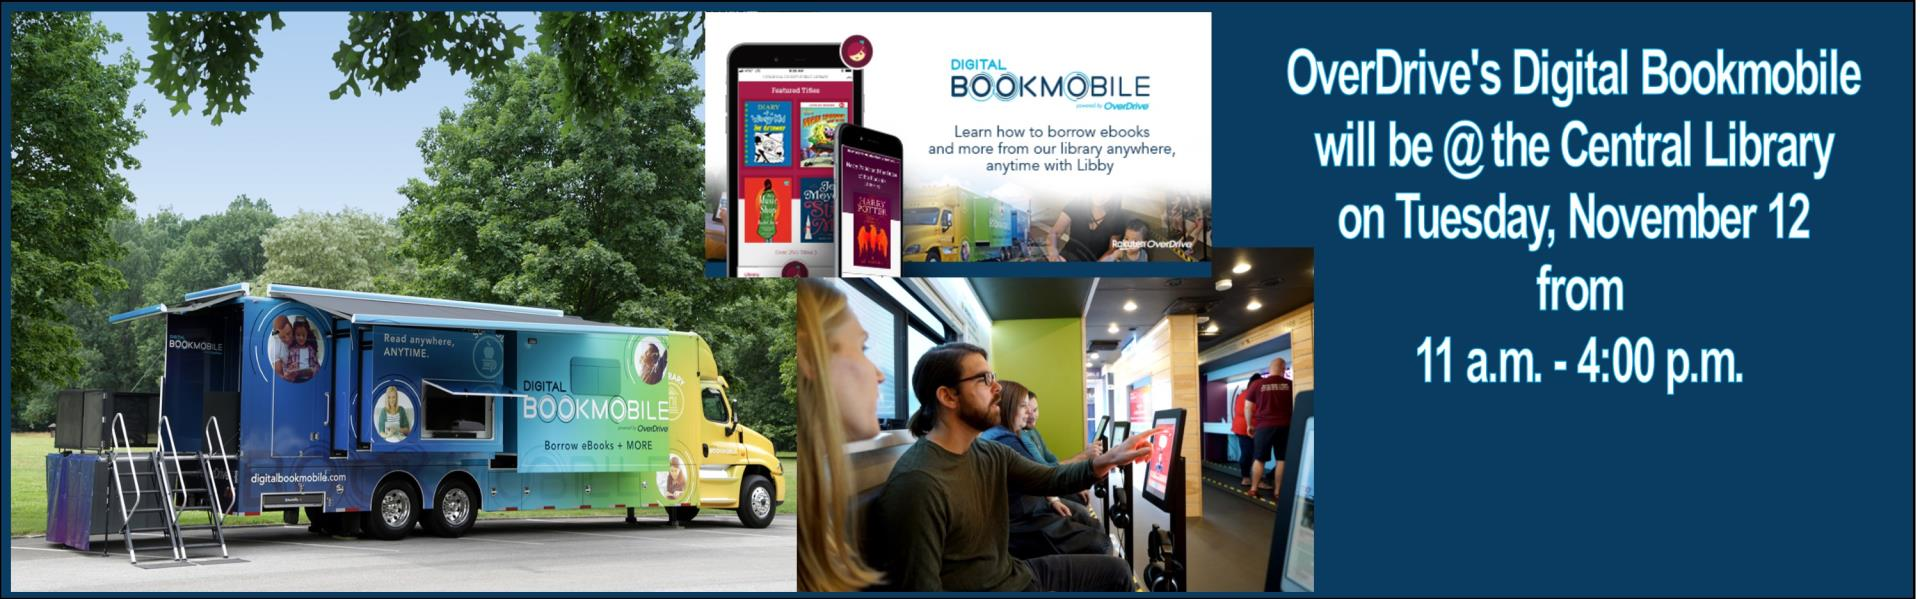 OverDrive's Digital Bookmobile  will be @ the Central Library  on Tuesday, November 12  from 11 a.m. - 4:00 p.m. Image of Bookmobile and adults inside bookmobile